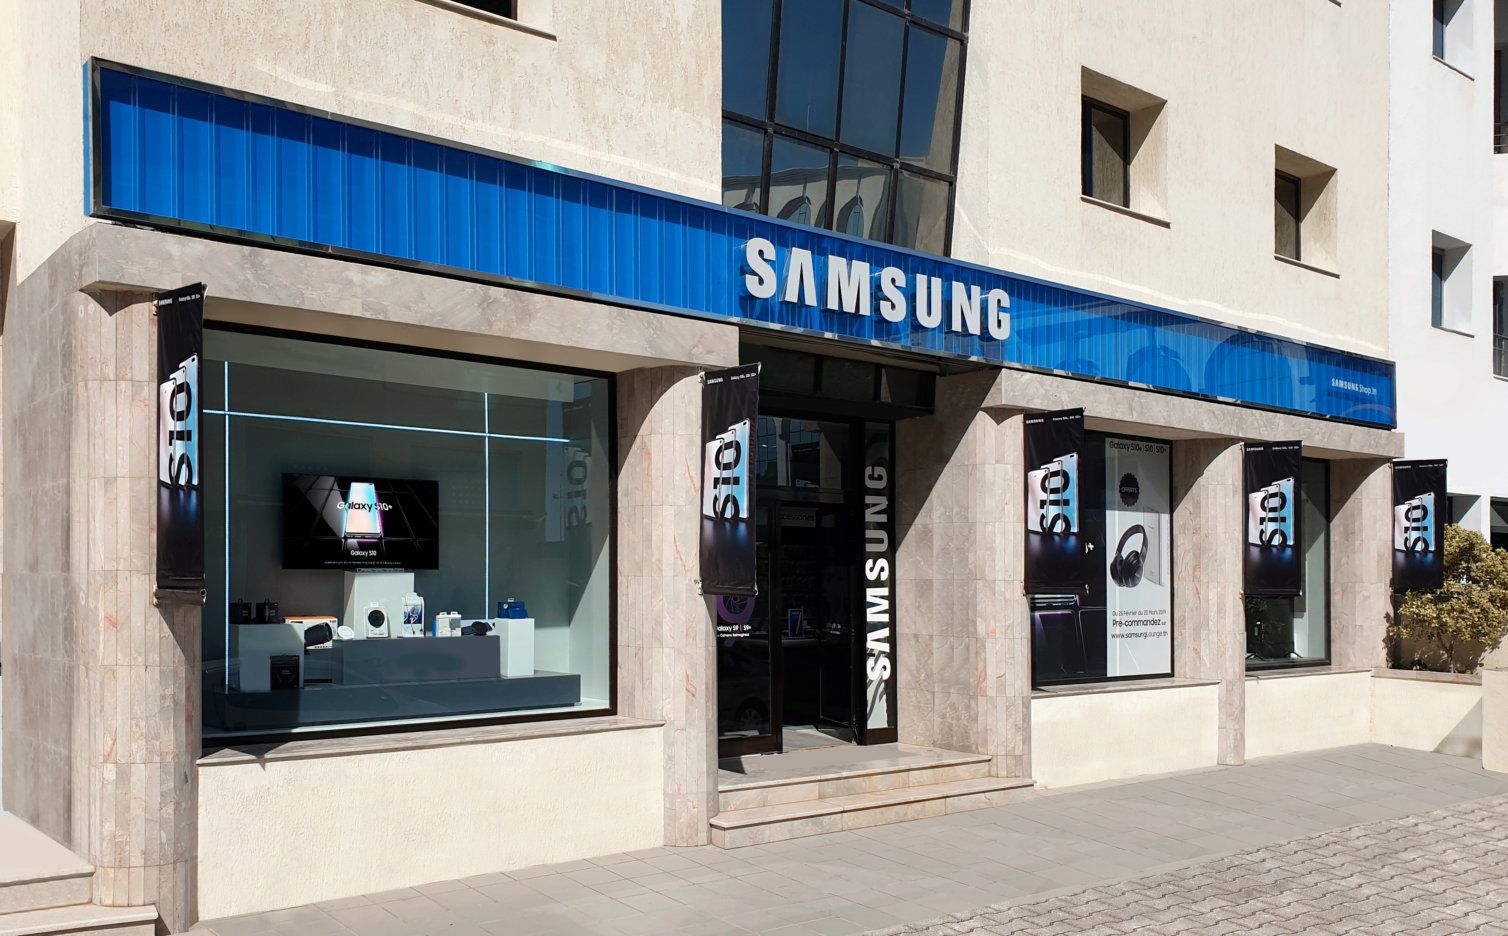 SAMSUNG BRAND SHOP LAC1